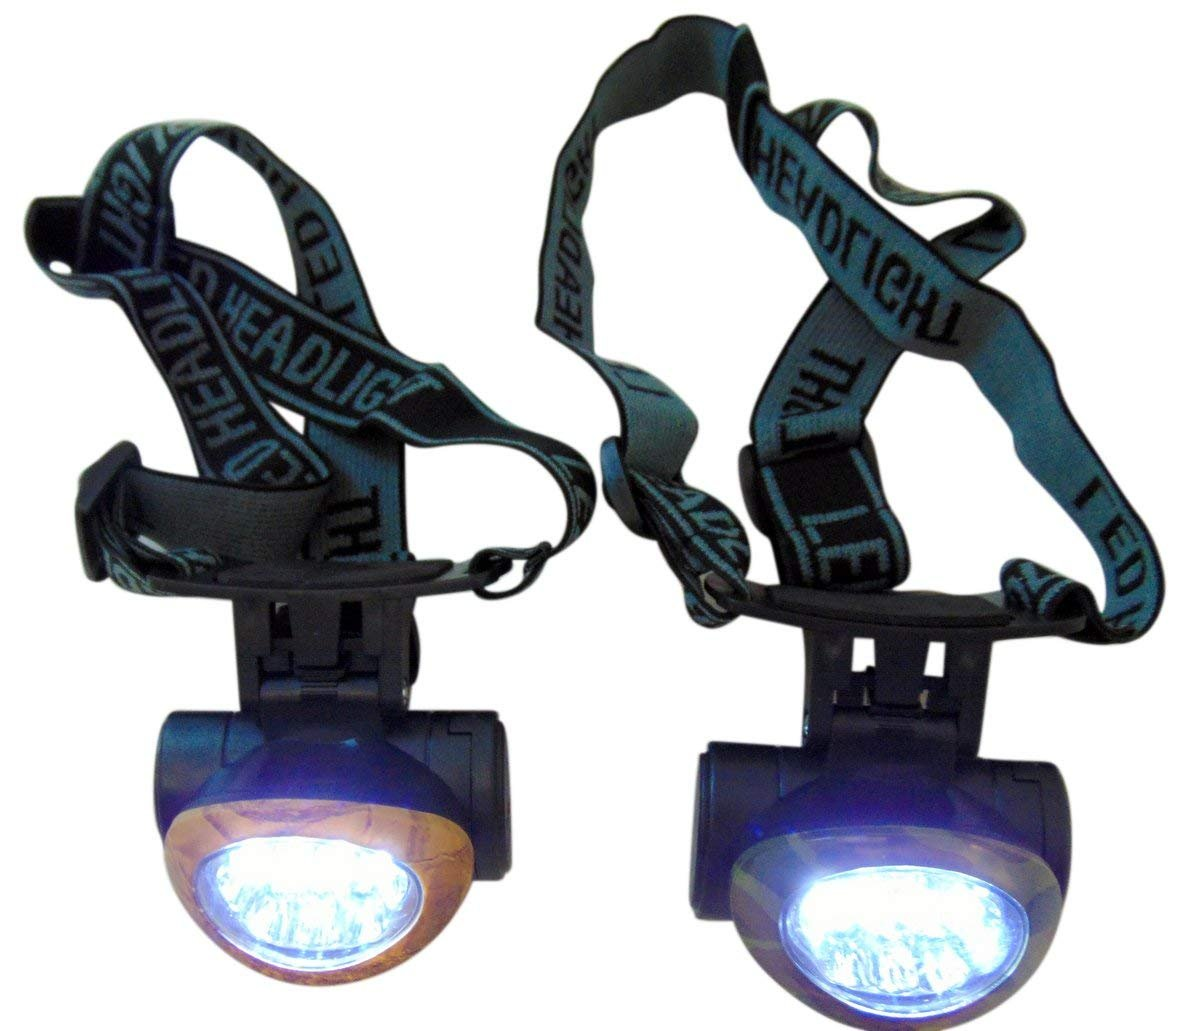 Personal Camoflage Headlight Headlamp for Running Hunting Working or Hunting Se